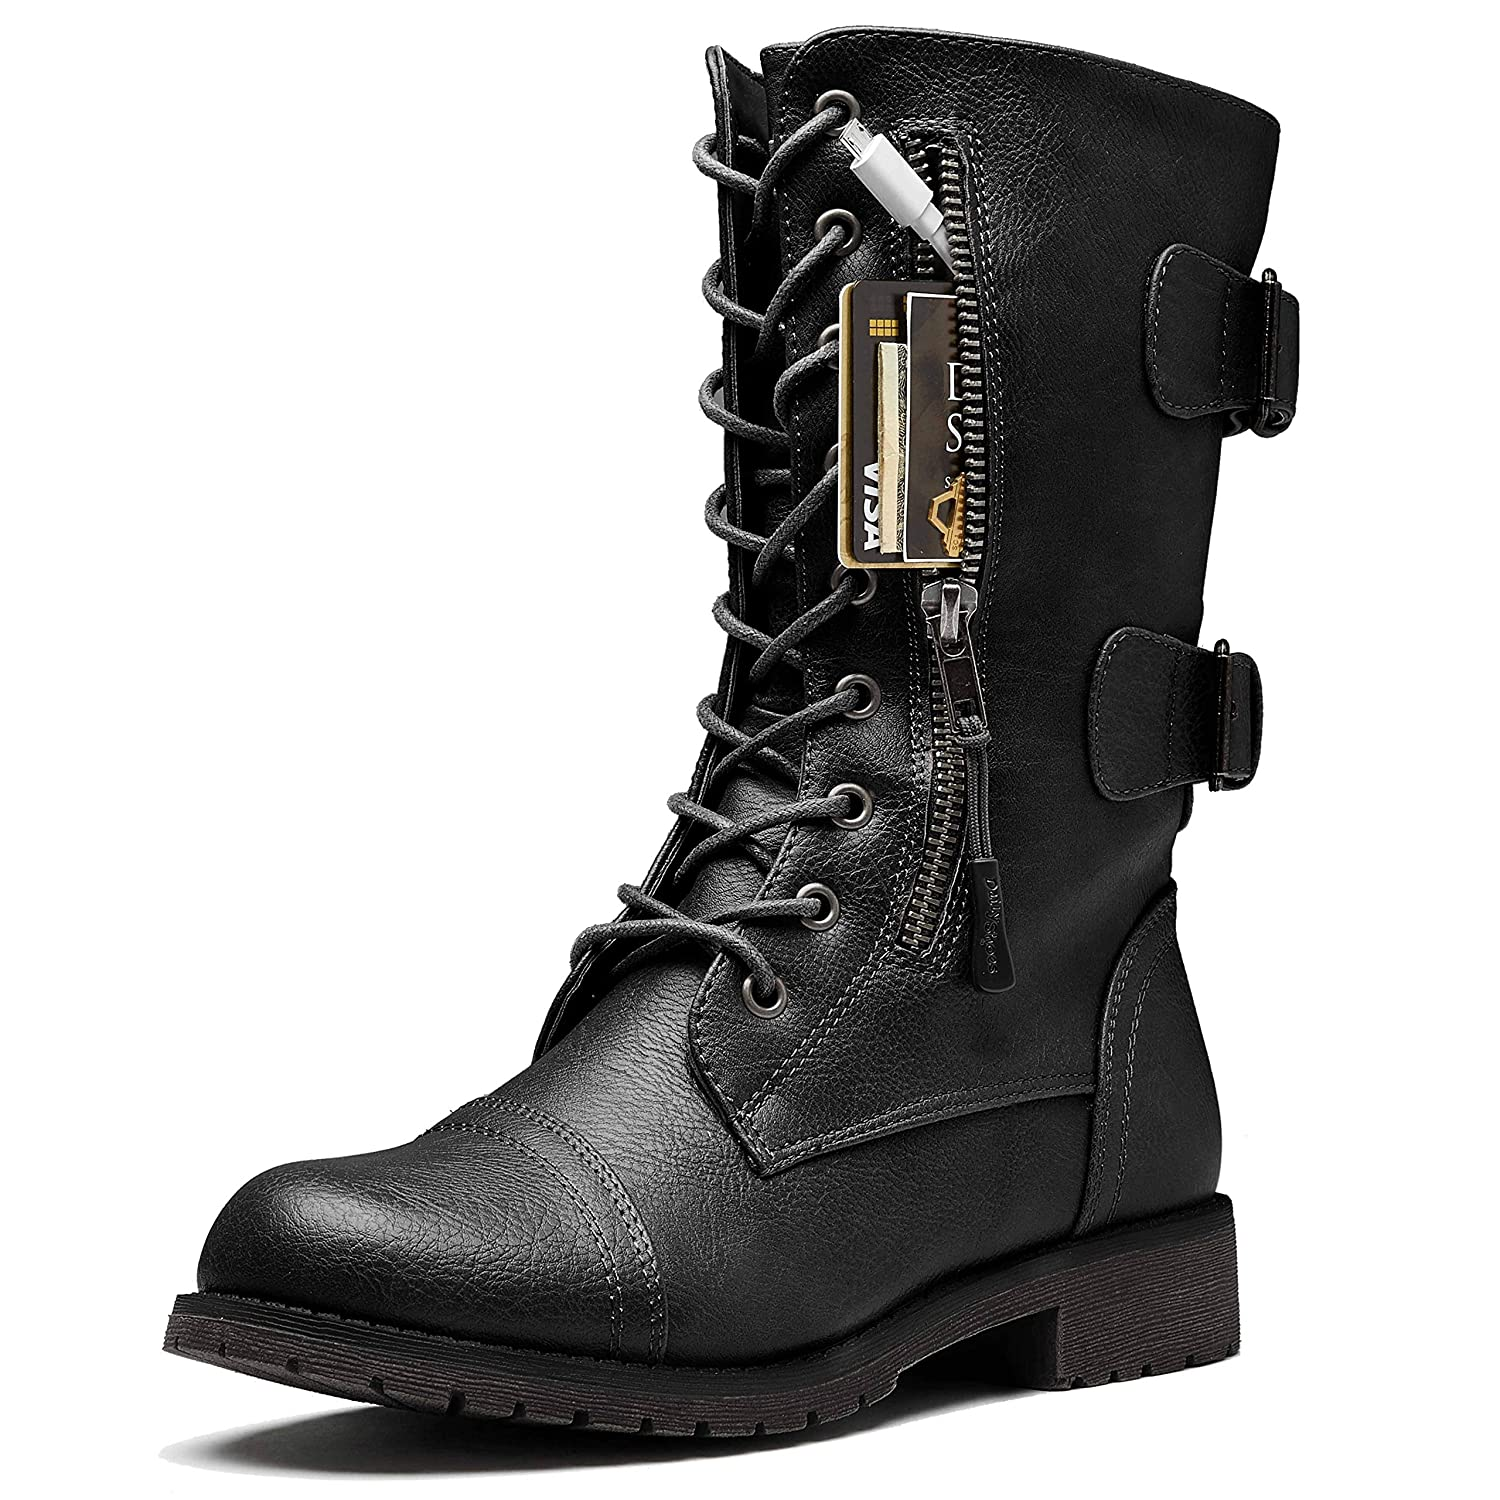 DailyShoes Women's Motorcycle Ankle Boot